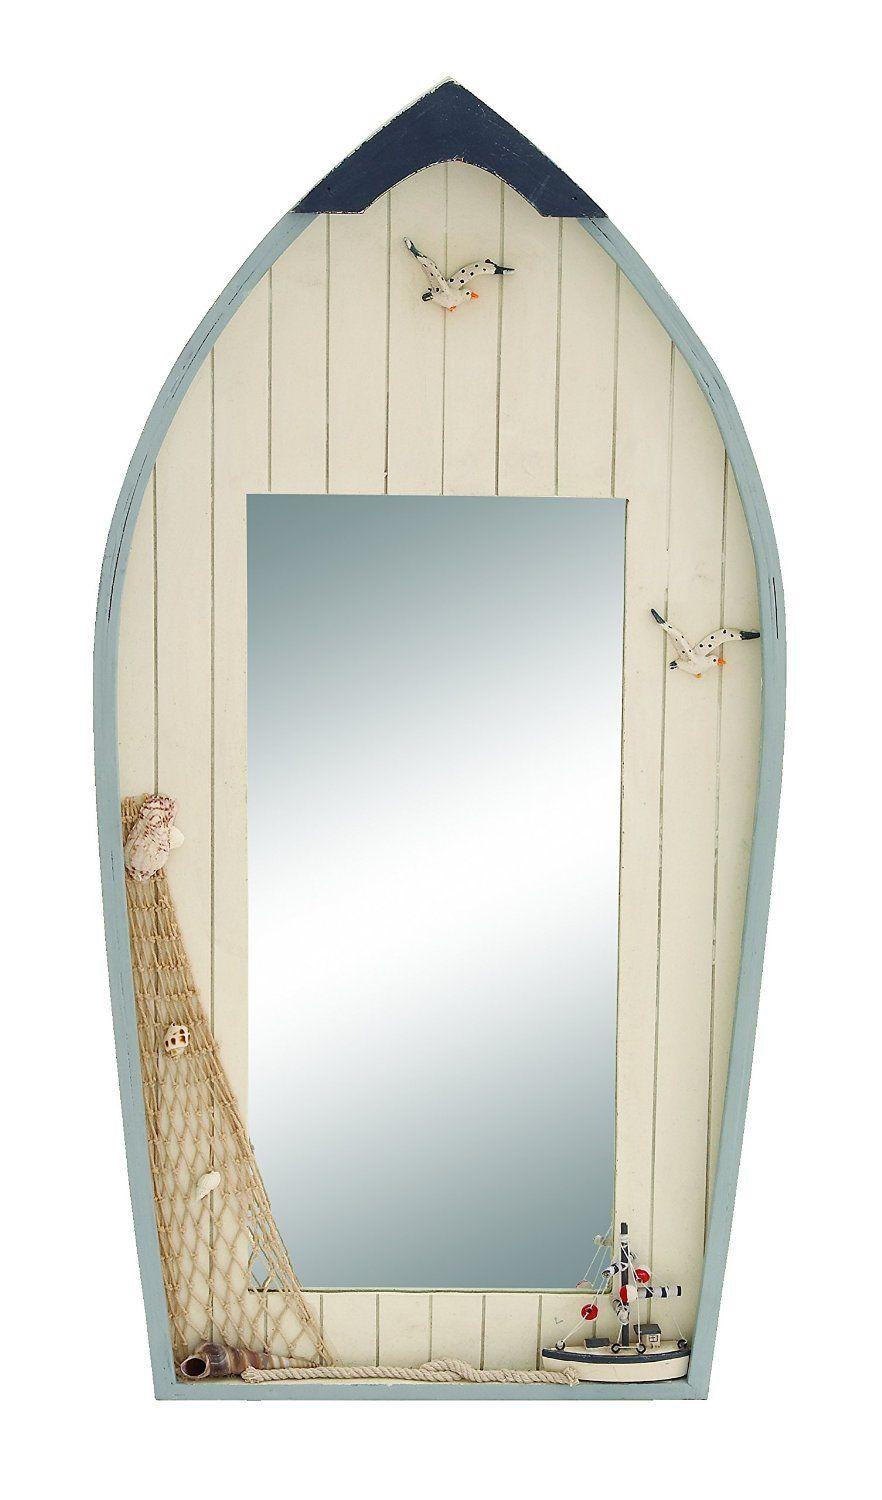 The Best Nautical Mirrors You Can We Love Themed In Coastal Homes And Here S A List Of Rustic Modern Vintage Antique